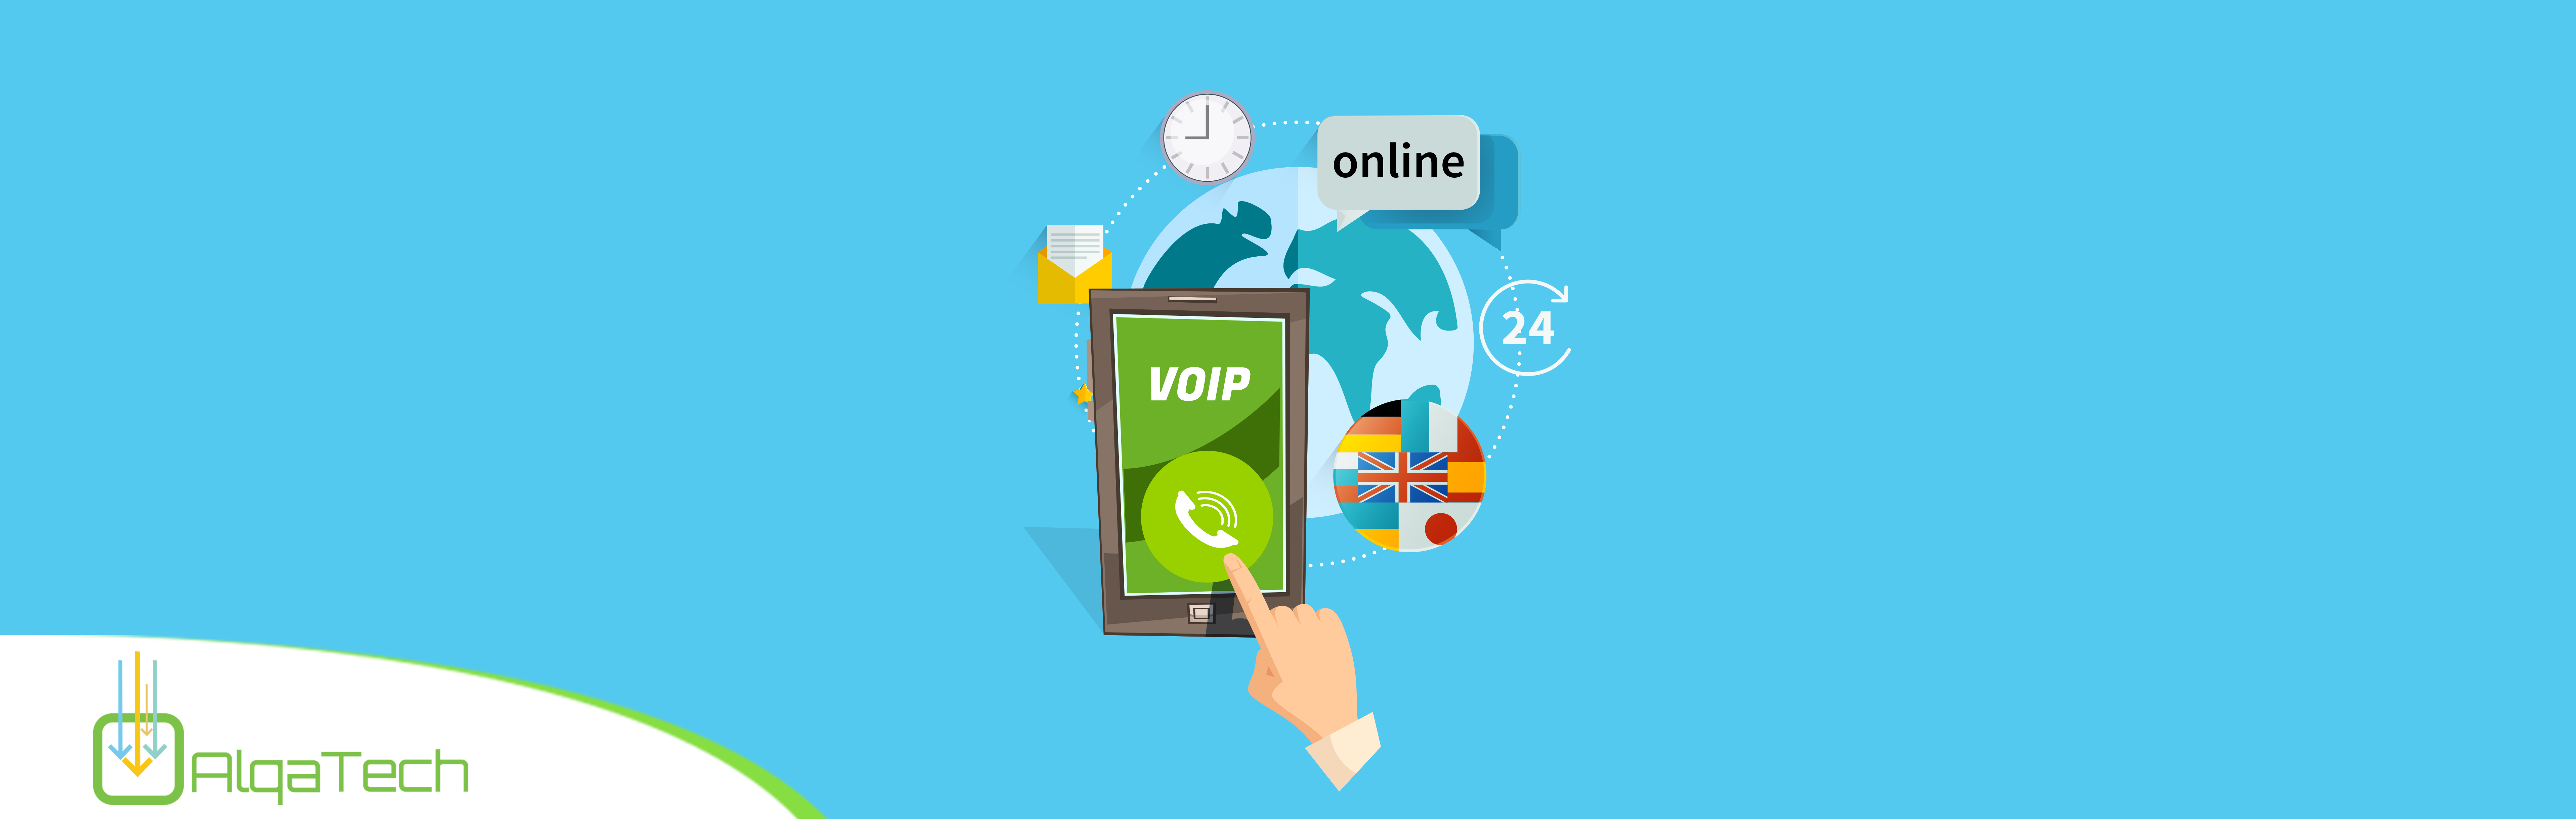 integrate voip callig in mobile app